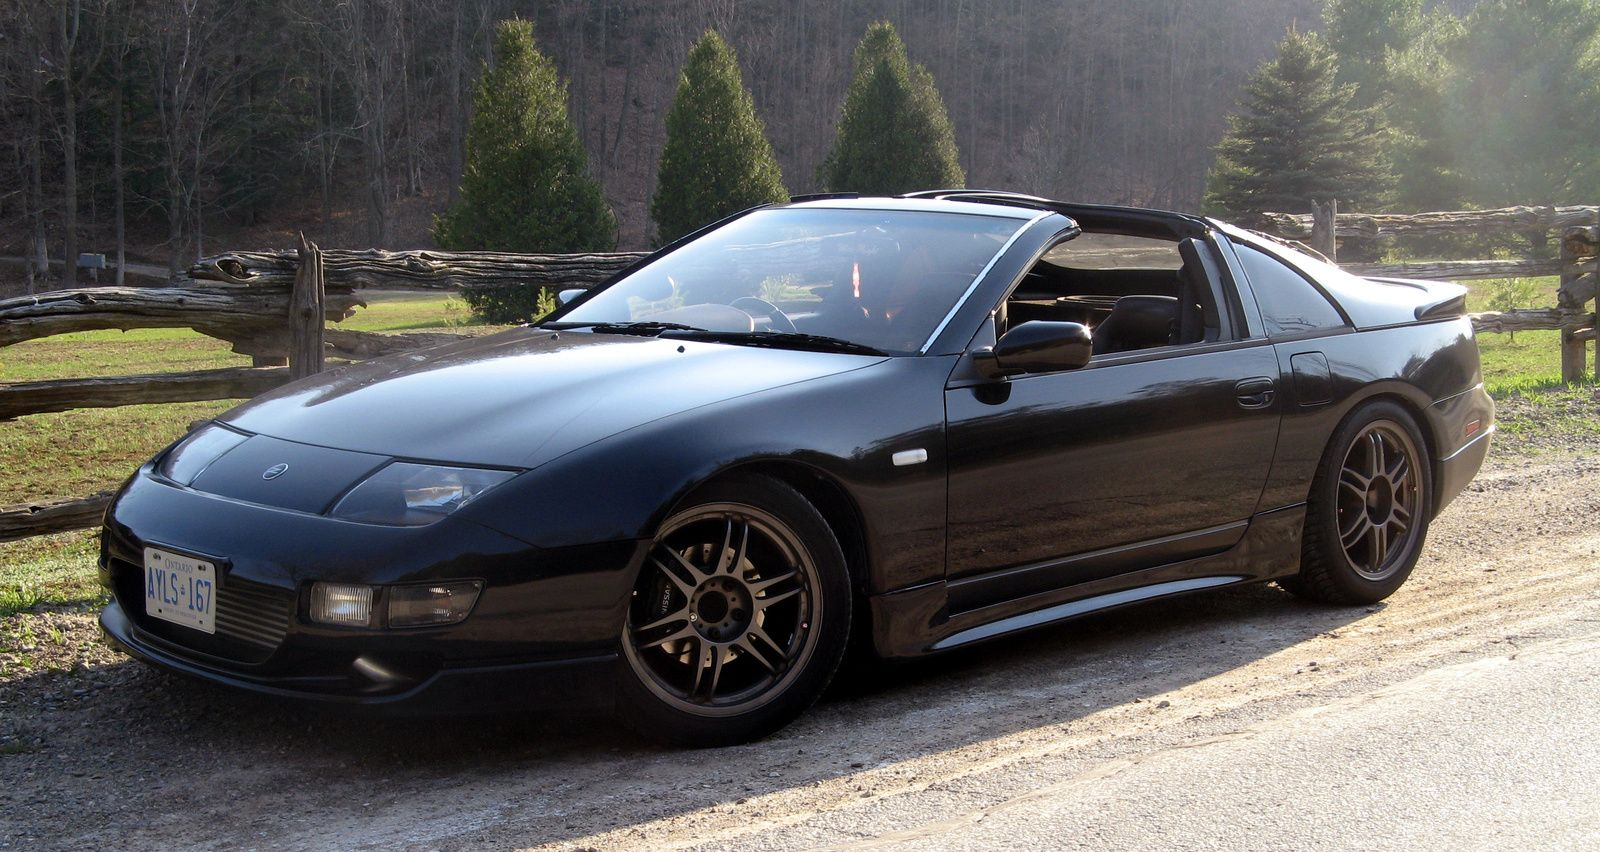 1990 nissan 300zx 1990 nissan 300zx 2 dr turbo hatchback picture exterior